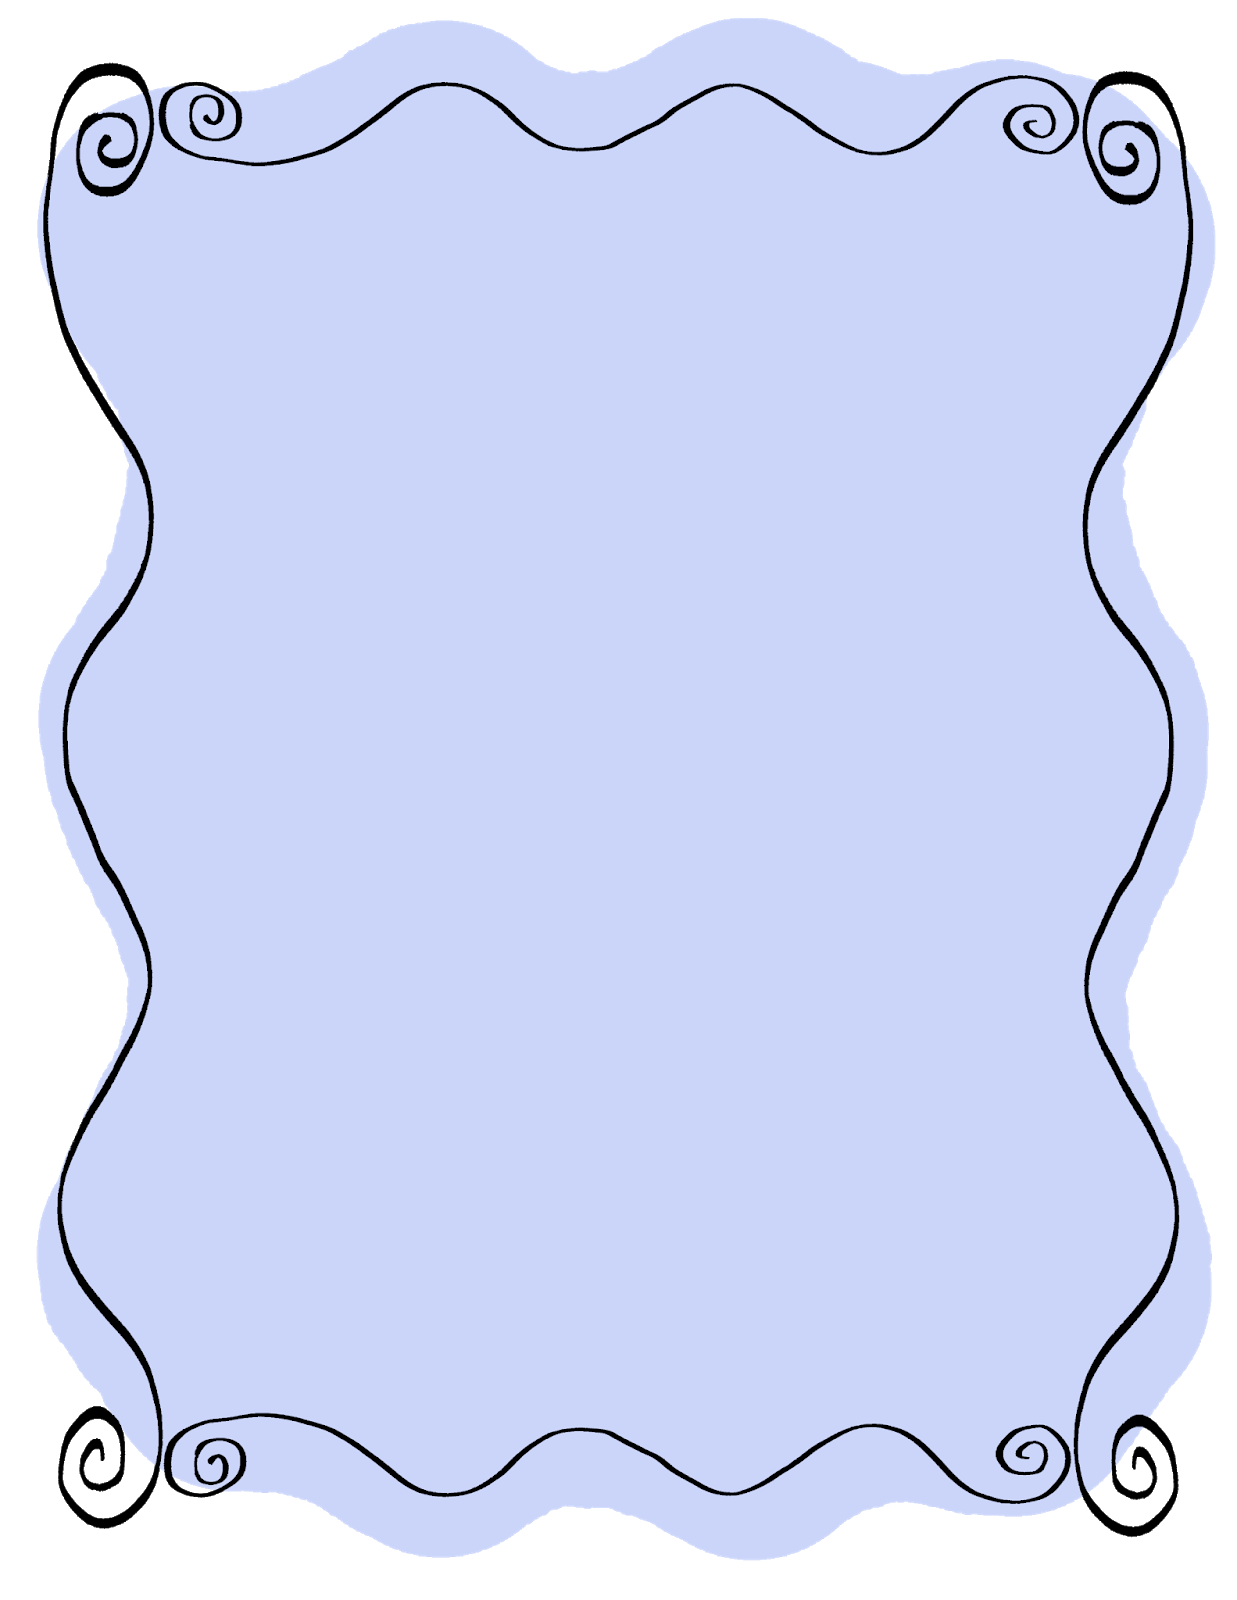 Border label png. The graphics monarch free